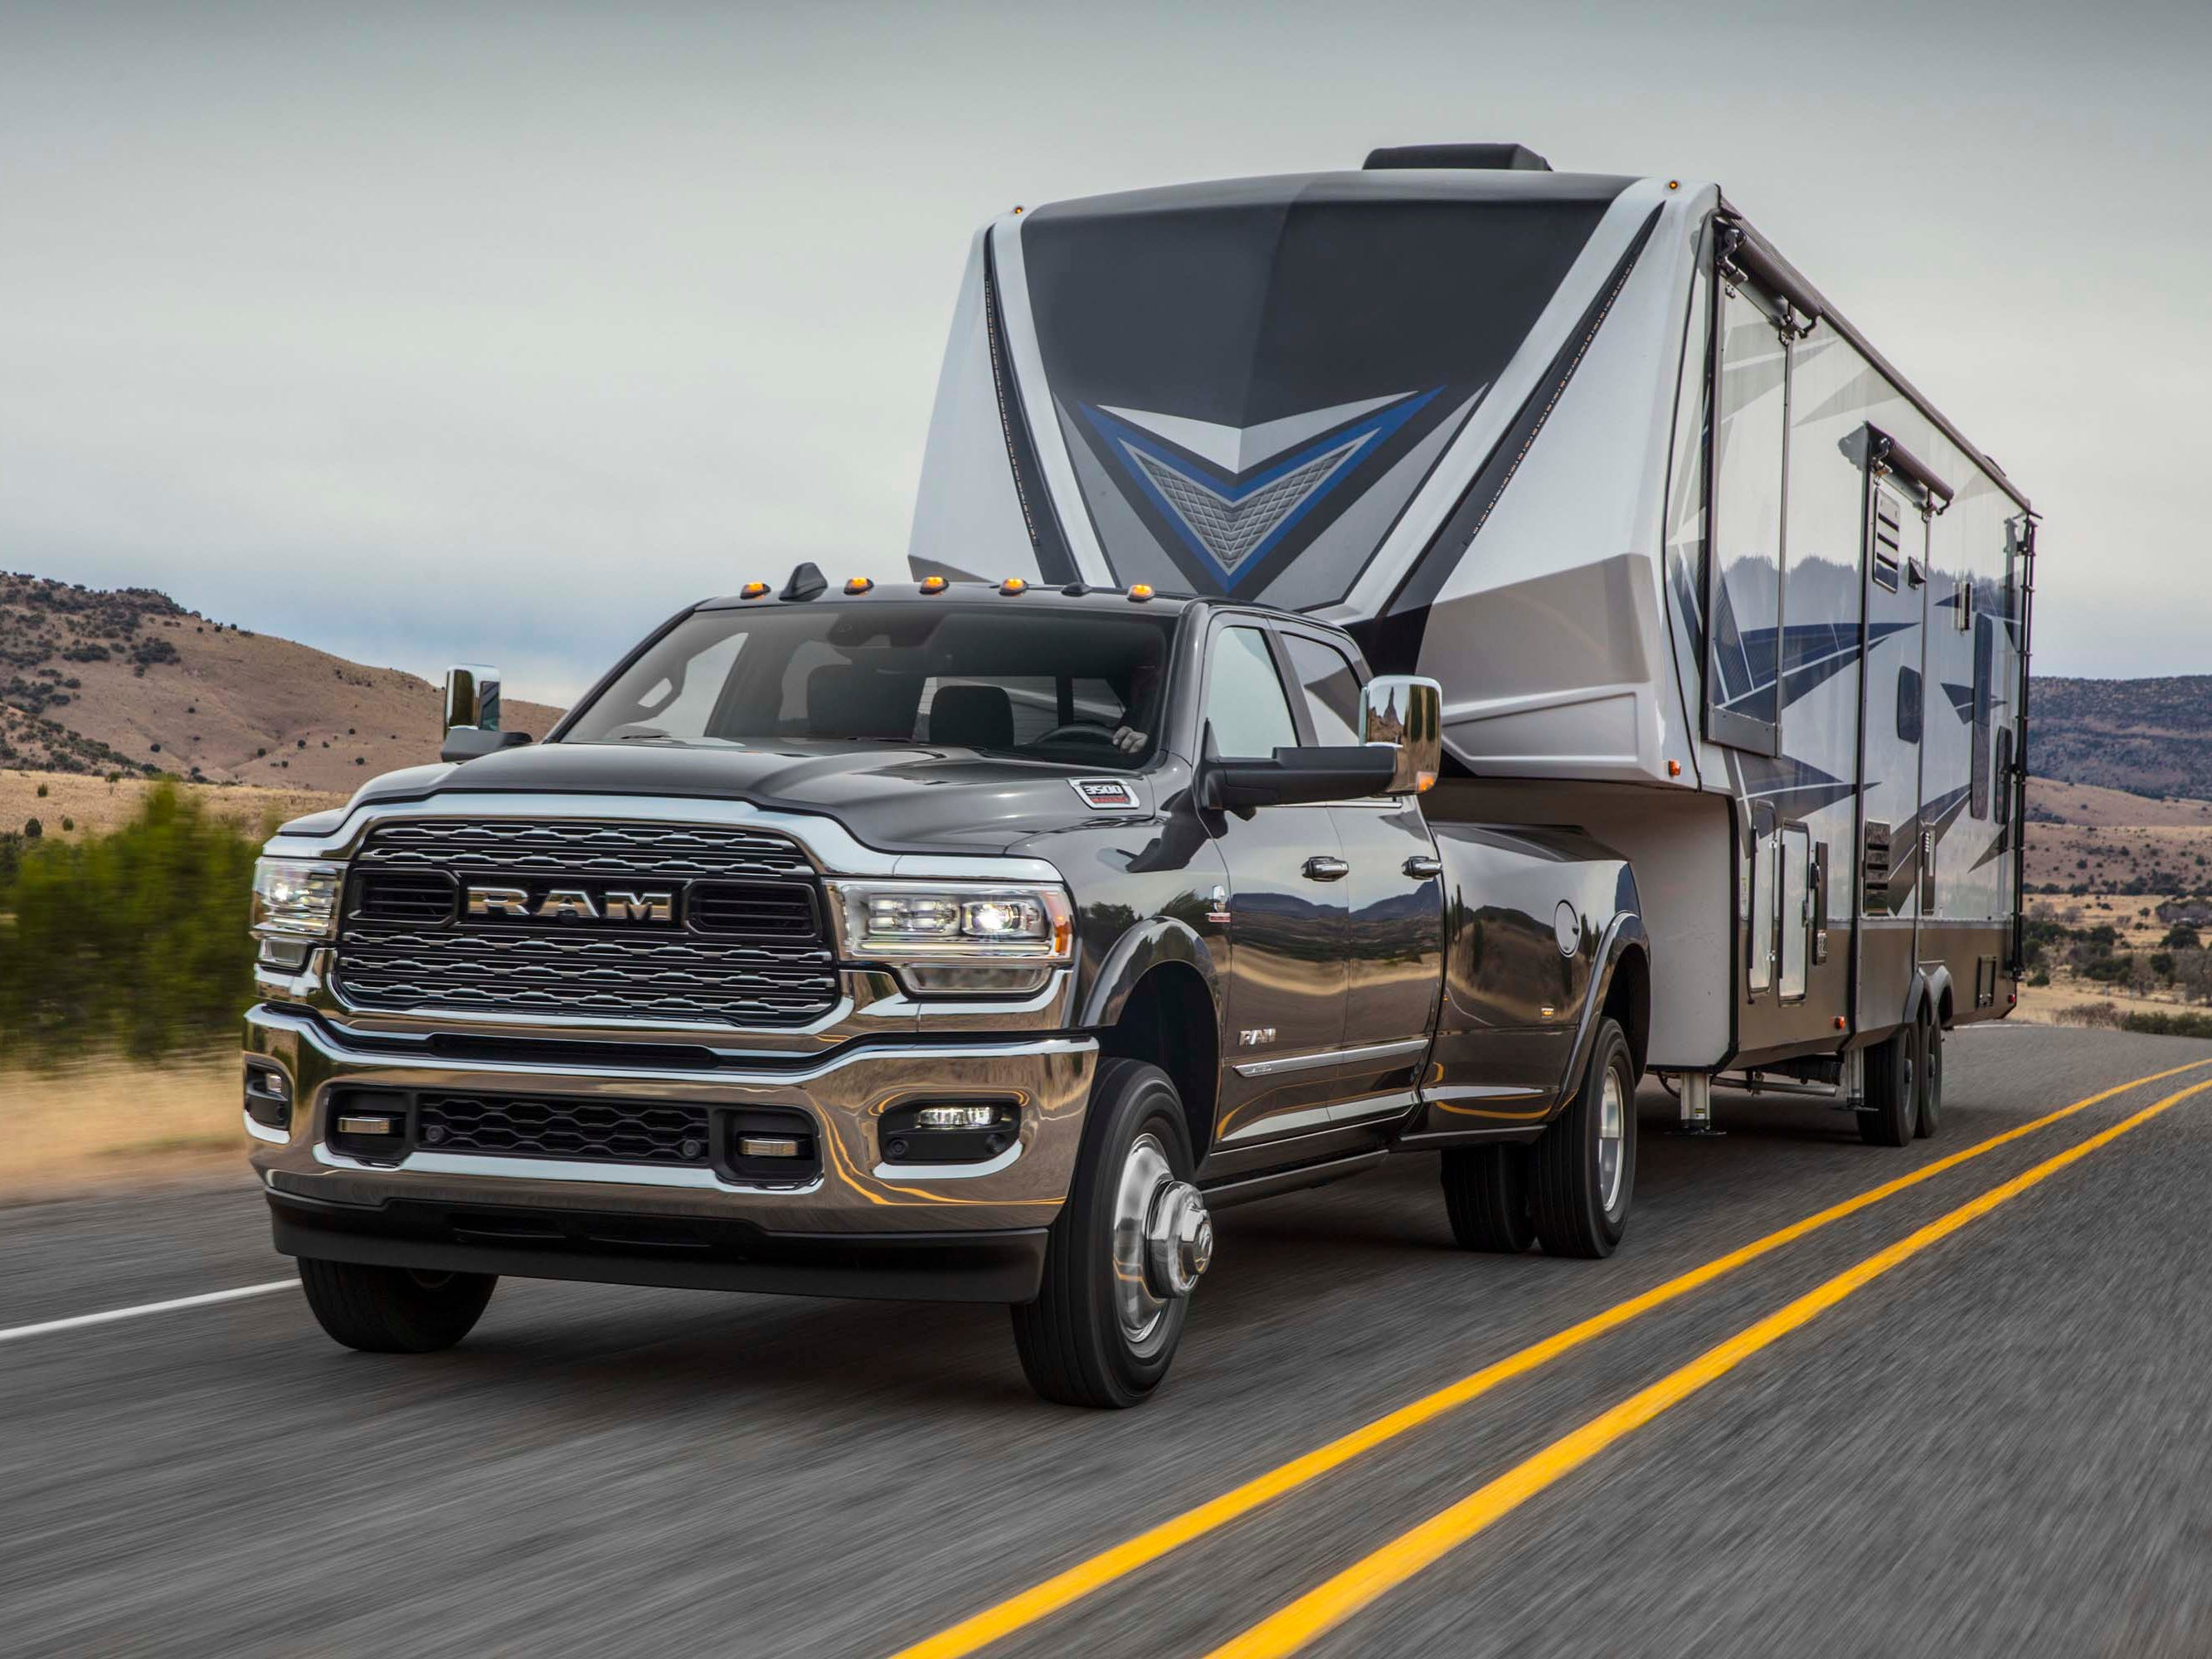 The 2019 Ram 3500 Heavy Duty — here in Limited Crew Cab Dually form — can tow up to 35,100 pounds. A mobile home like this? Piece o' cake.